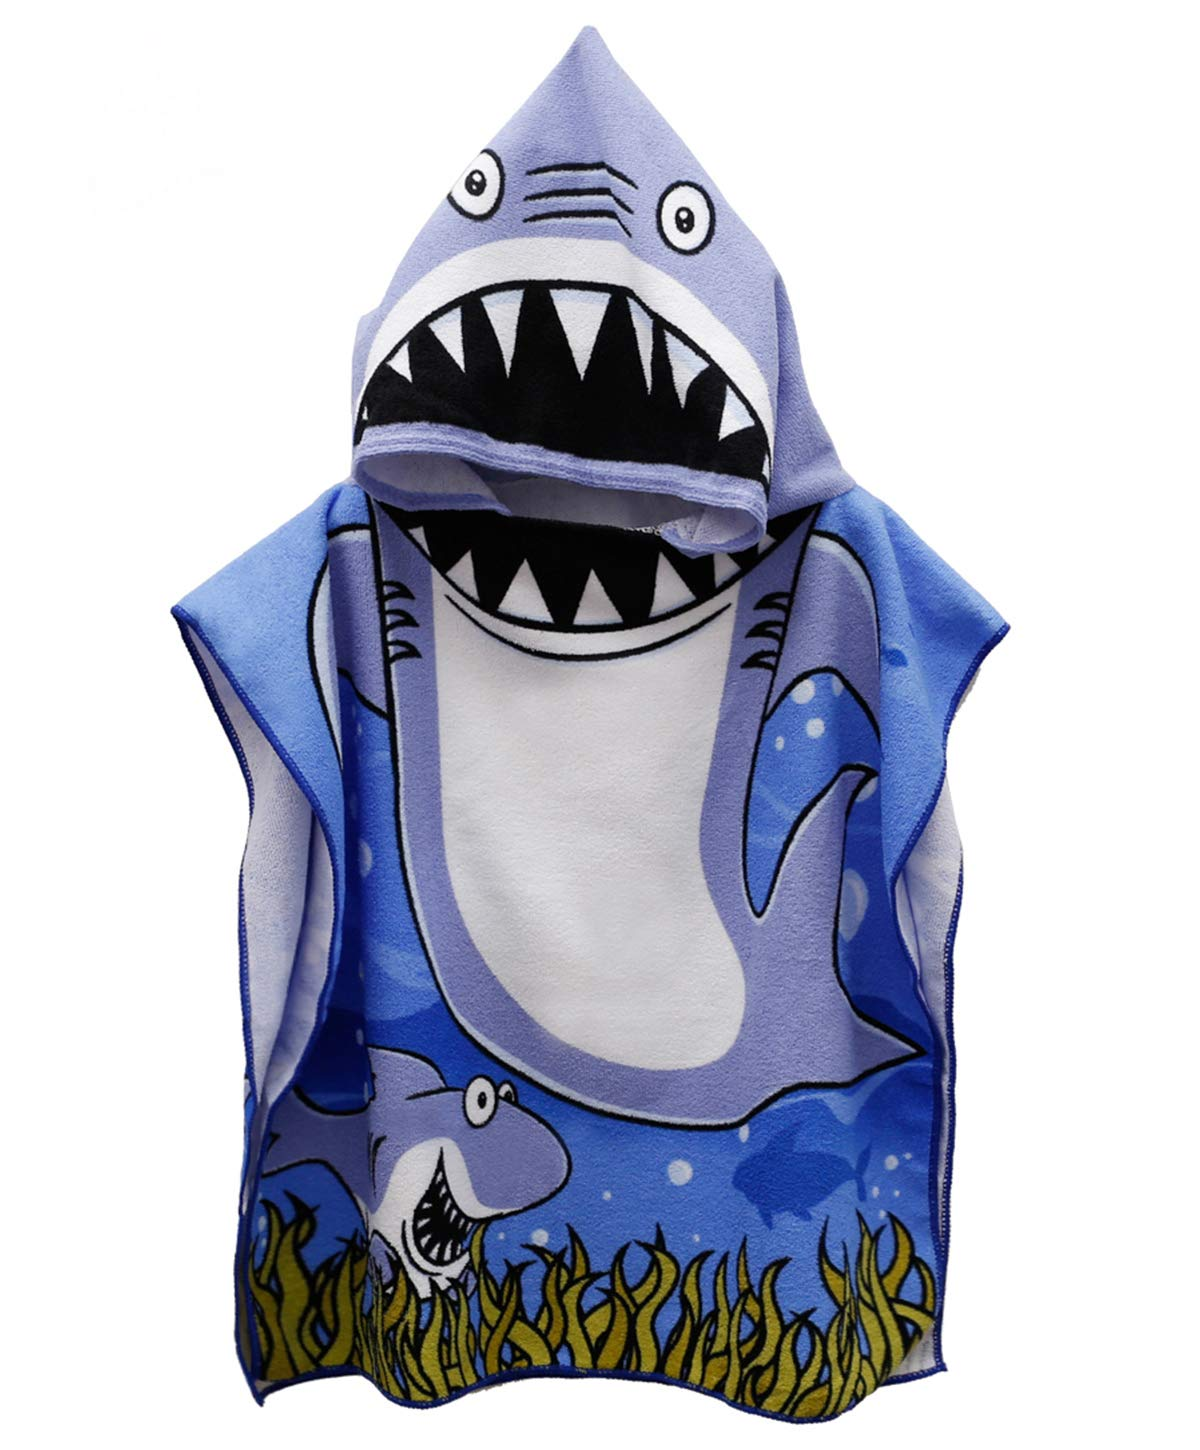 Genovega Toddler Hooded Beach Bath Towel – Baby Shark Soft Beach Towel Swim Pool Coverup Poncho Cape for Boys Kids Children Gift, 1-7 Years Old Bath Robe